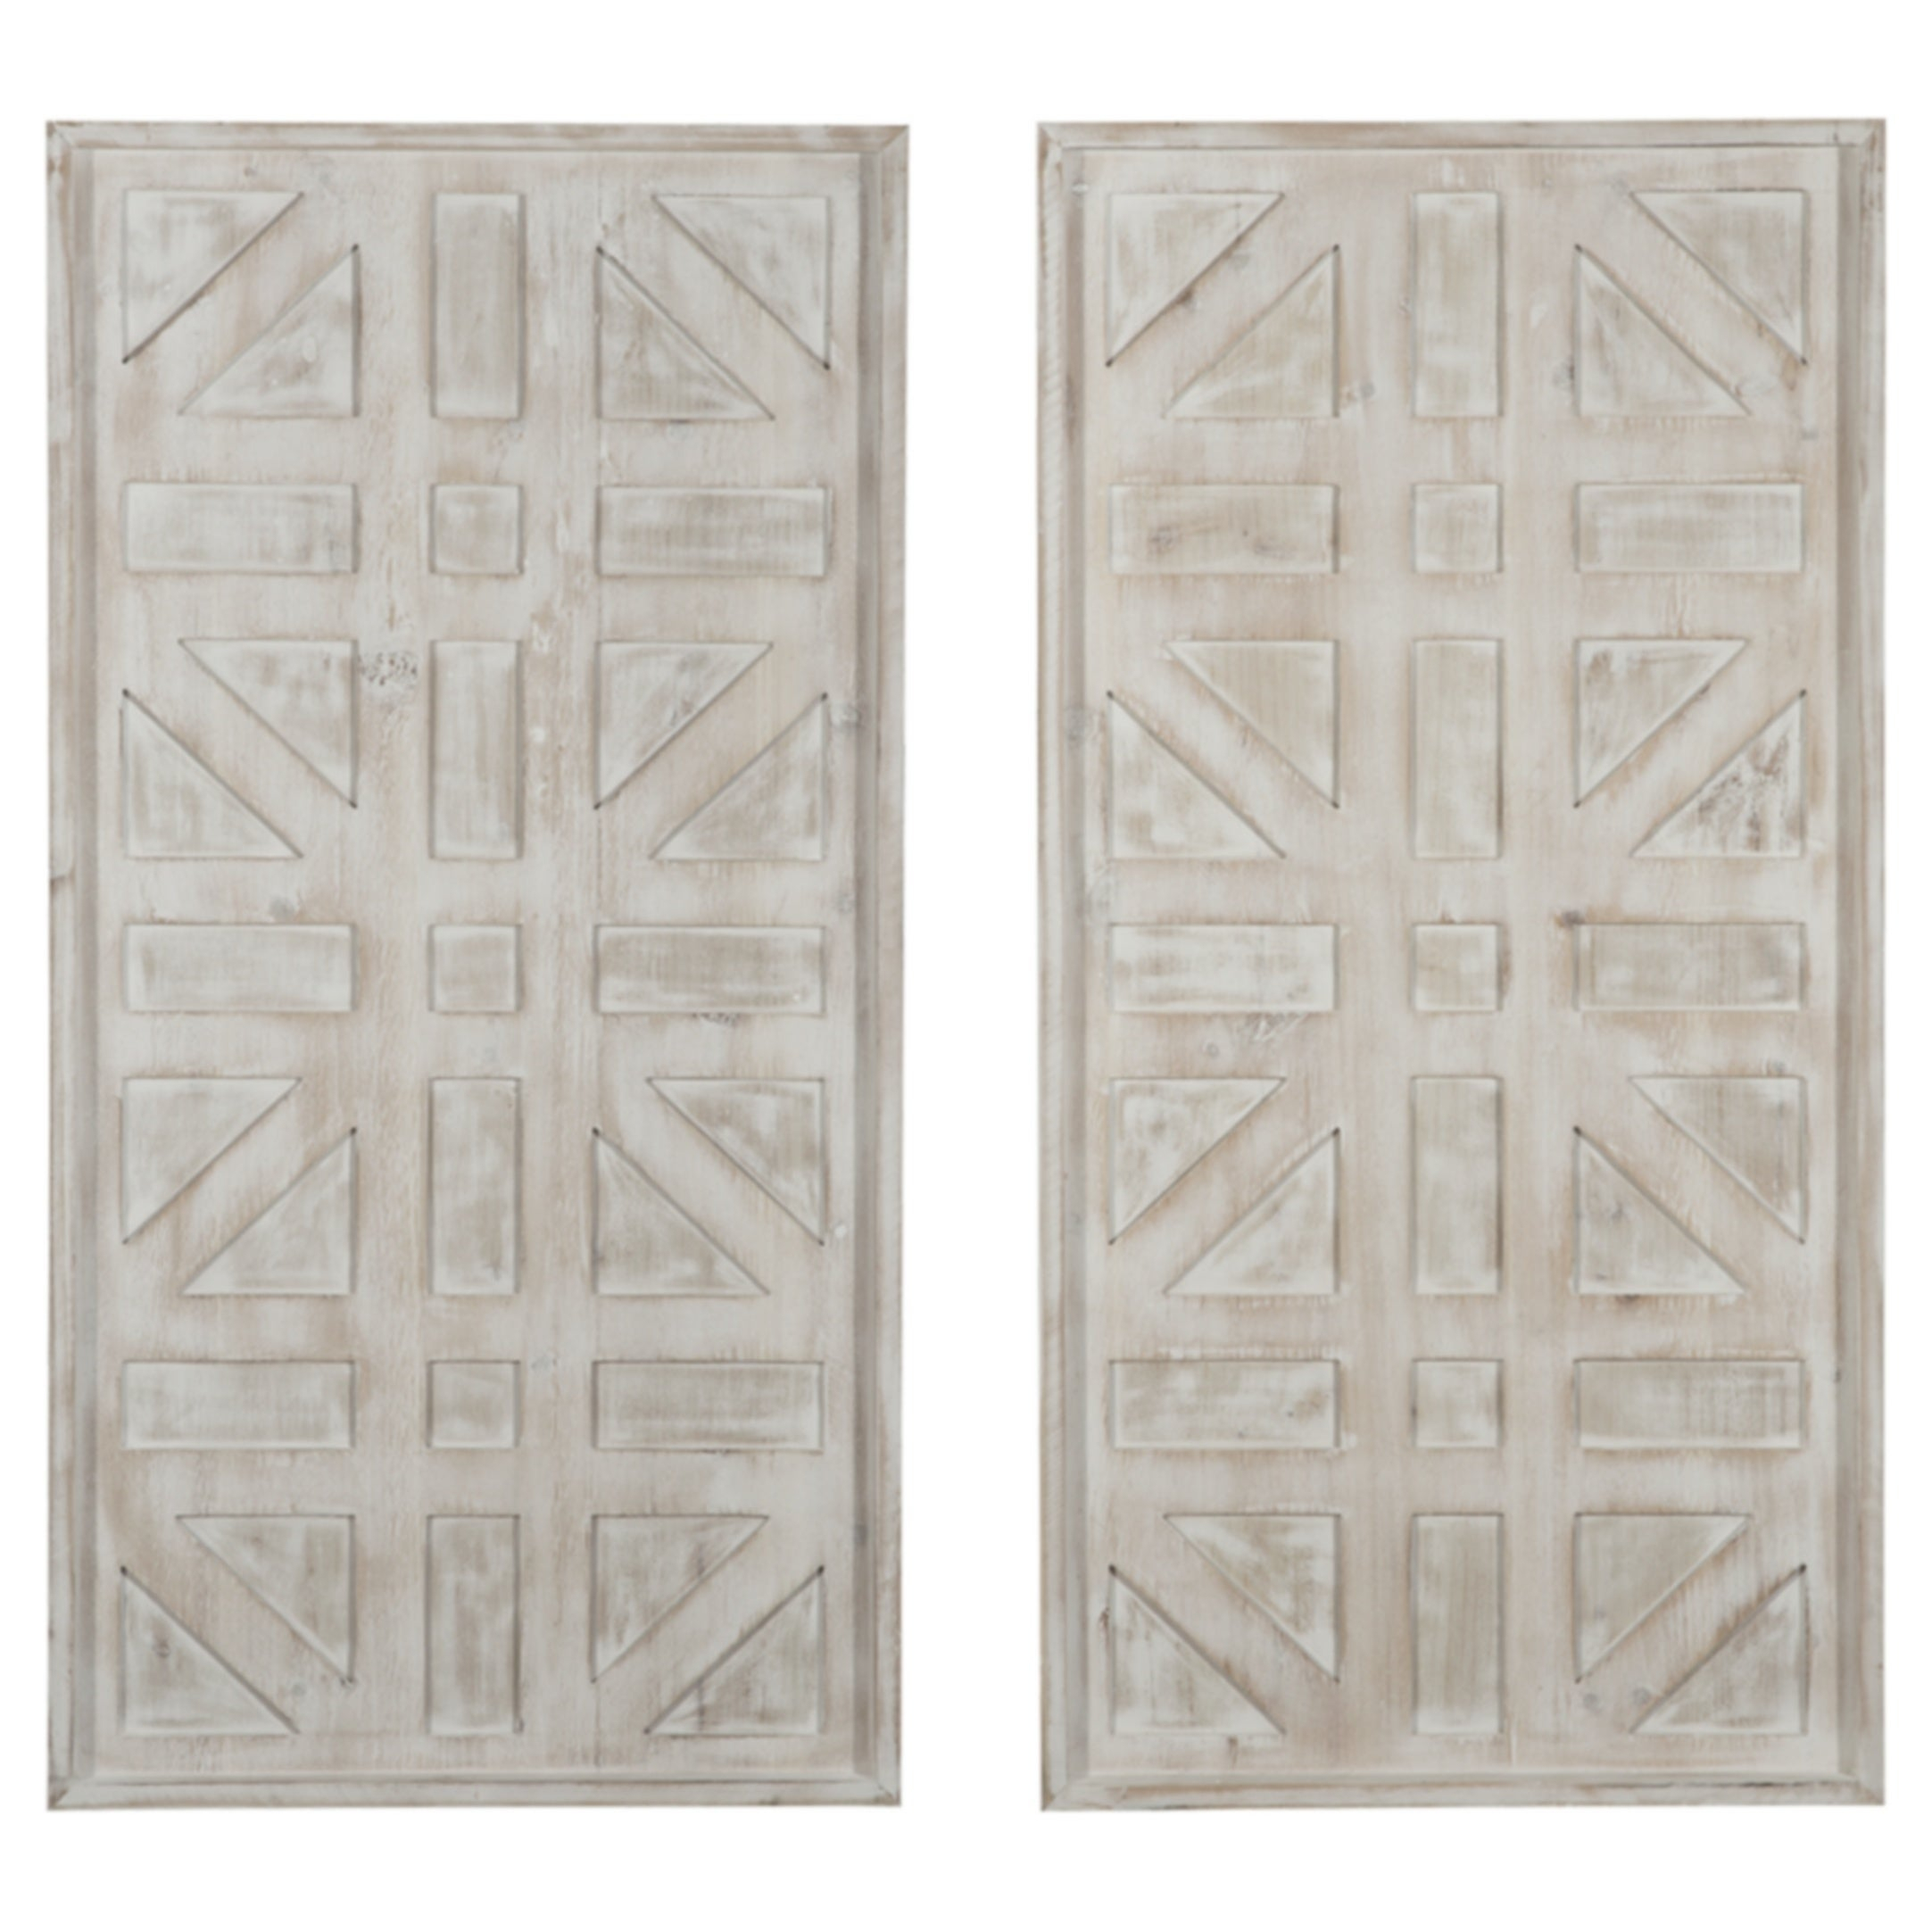 Find Great Art Gallery Deals Shopping At Overstock With Preferred 2 Piece Panel Wood Wall Decor Sets (Set Of 2) (View 8 of 20)